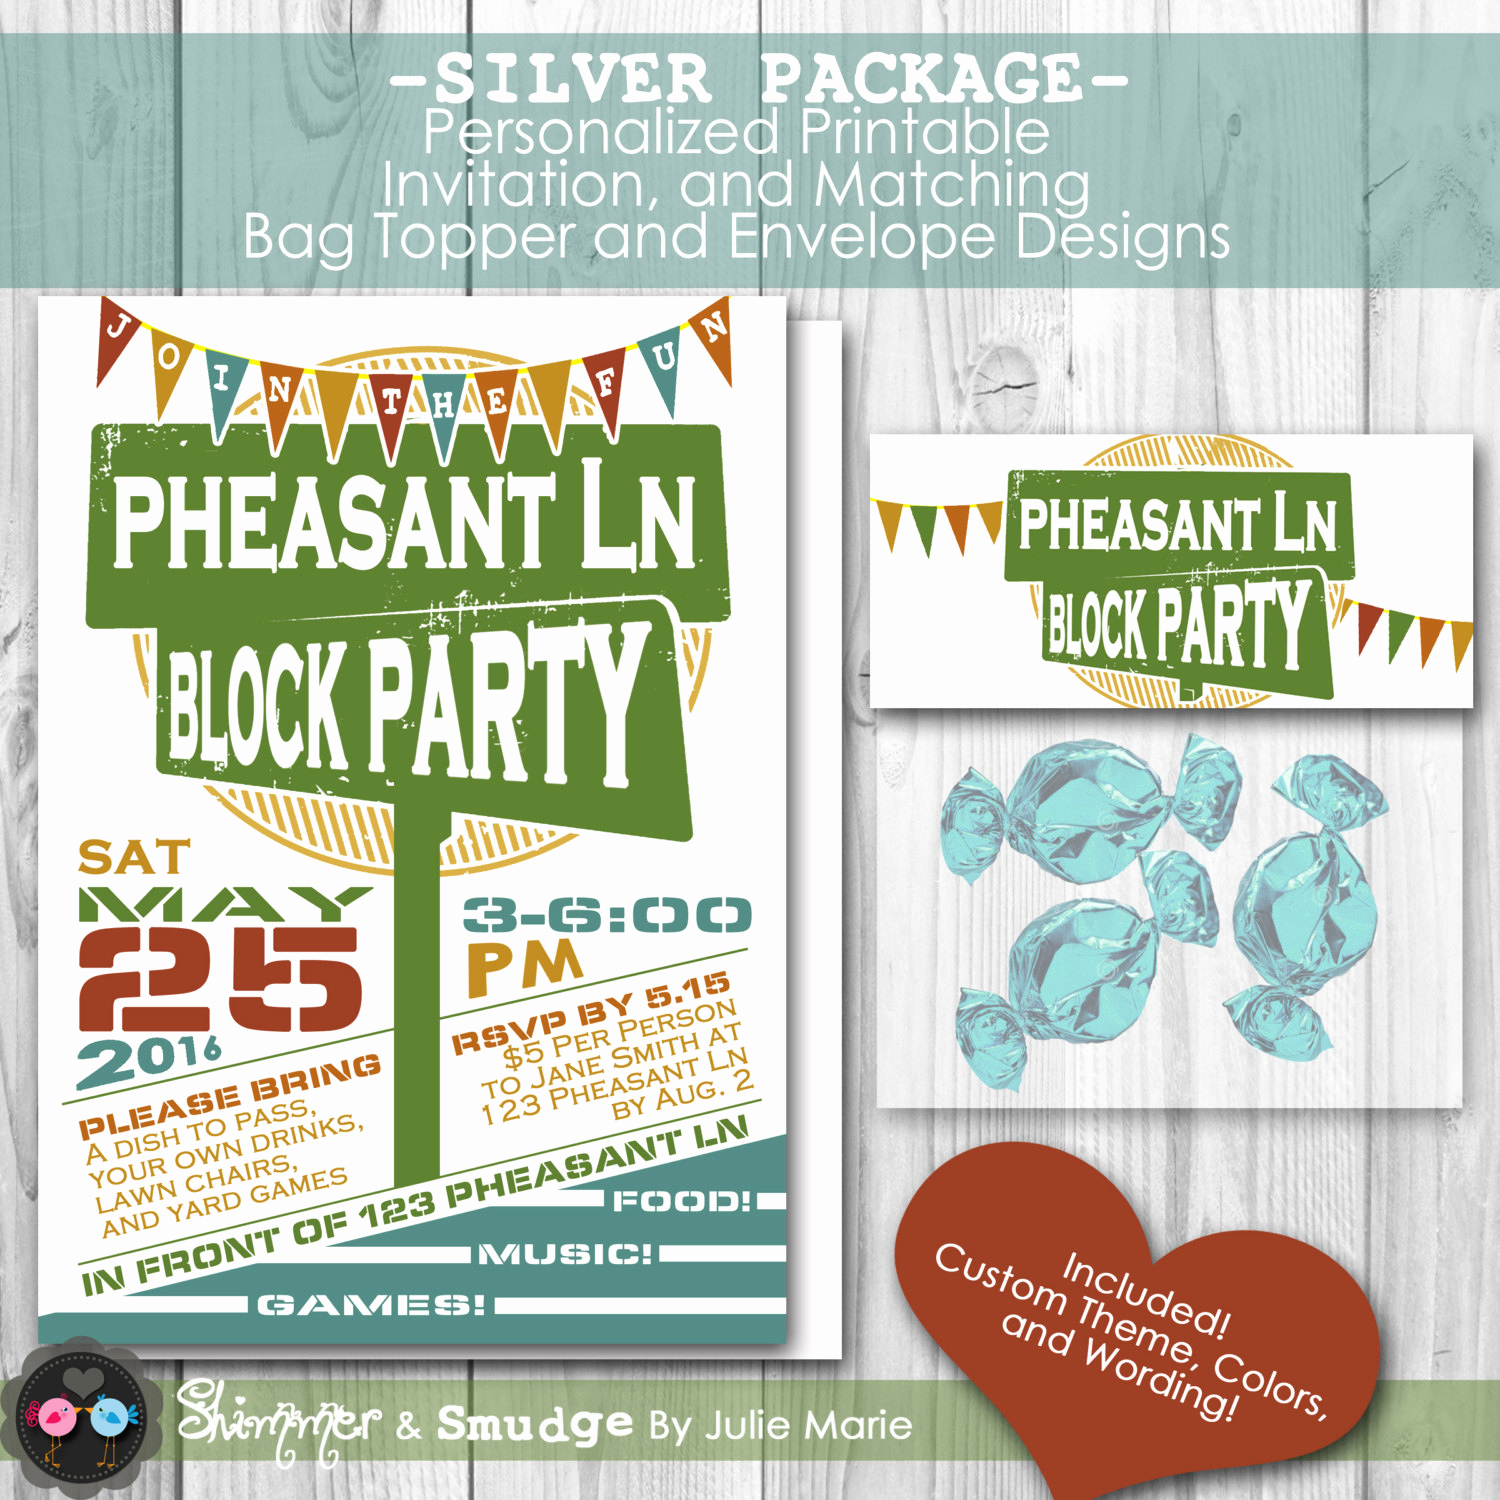 Neighborhood Block Party Invitation Awesome Neighborhood Block Party Personalized Printable Invitation